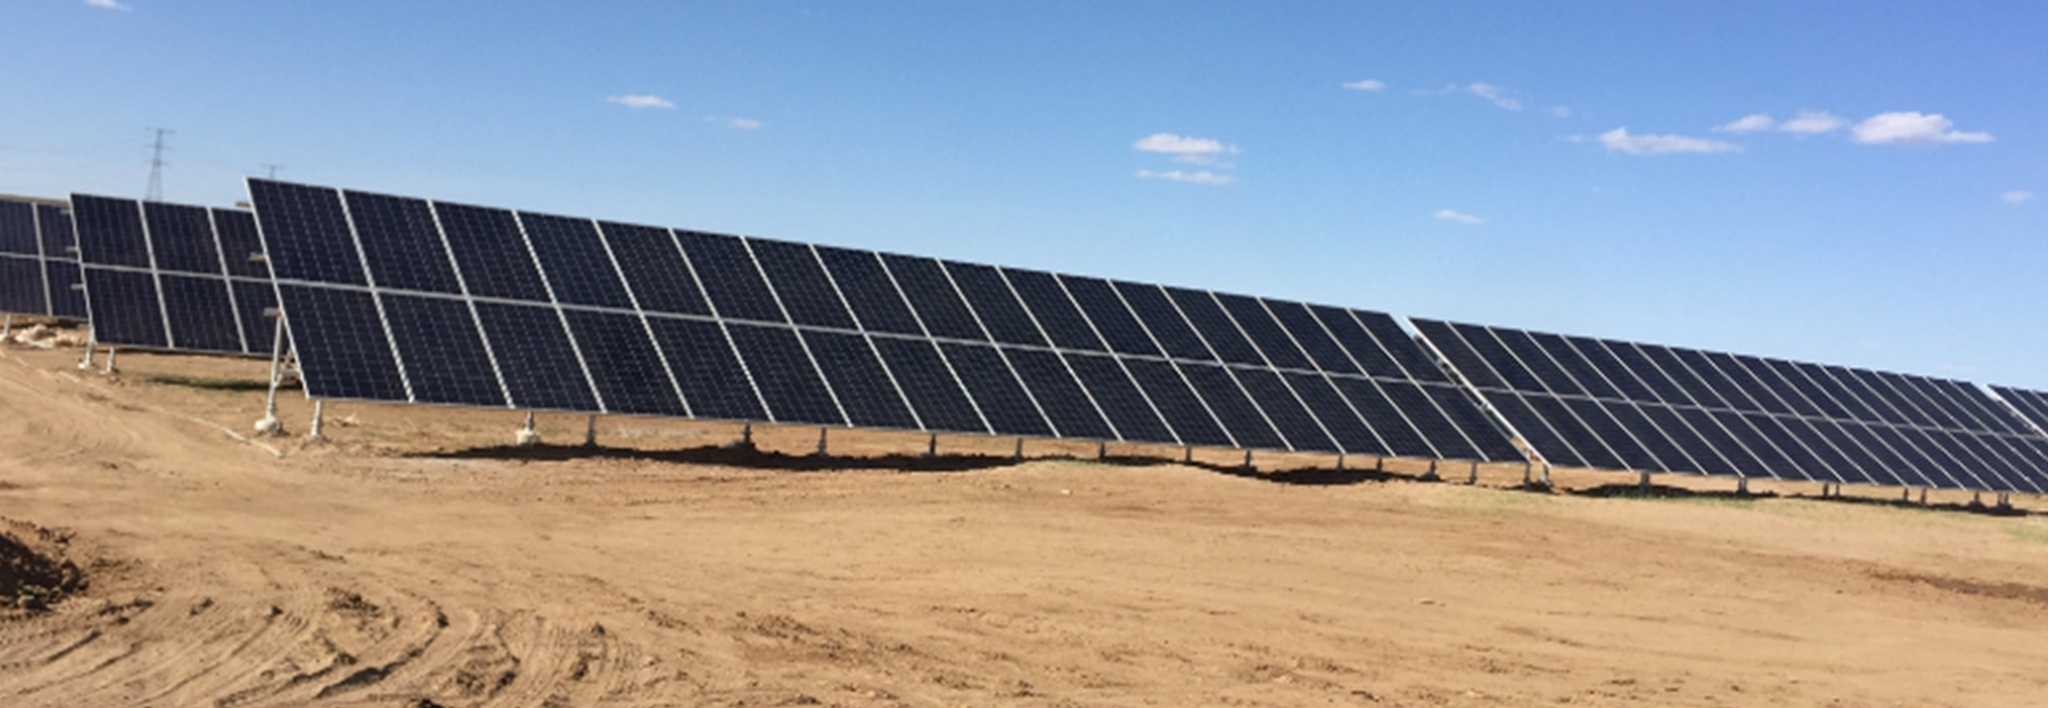 Clenergy Ground-mount Solar Project 20072018